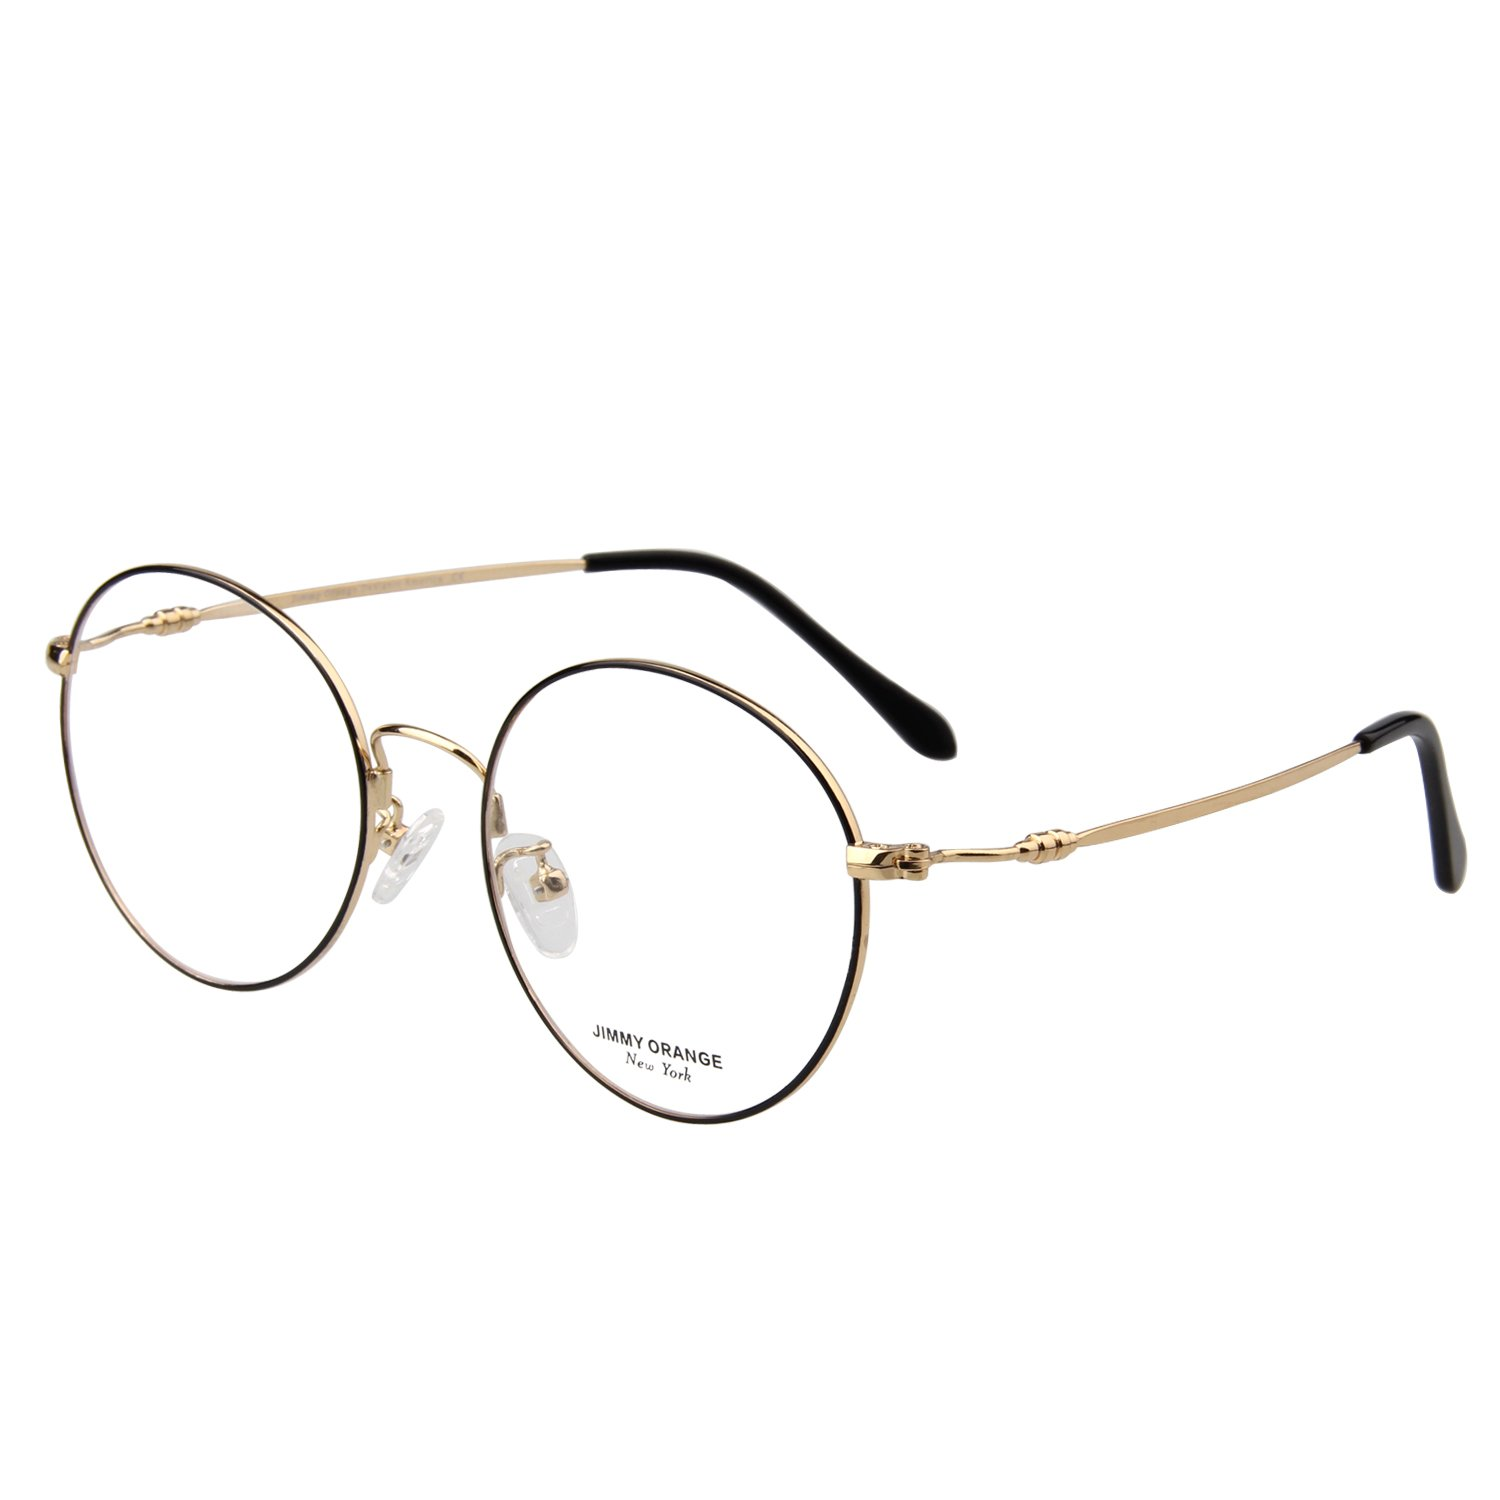 518c350c50d5 Amazon.com  JO Designer Oversized Women s Round Glasses Mens Metal Optical  Frame JO5214 Black  Health   Personal Care